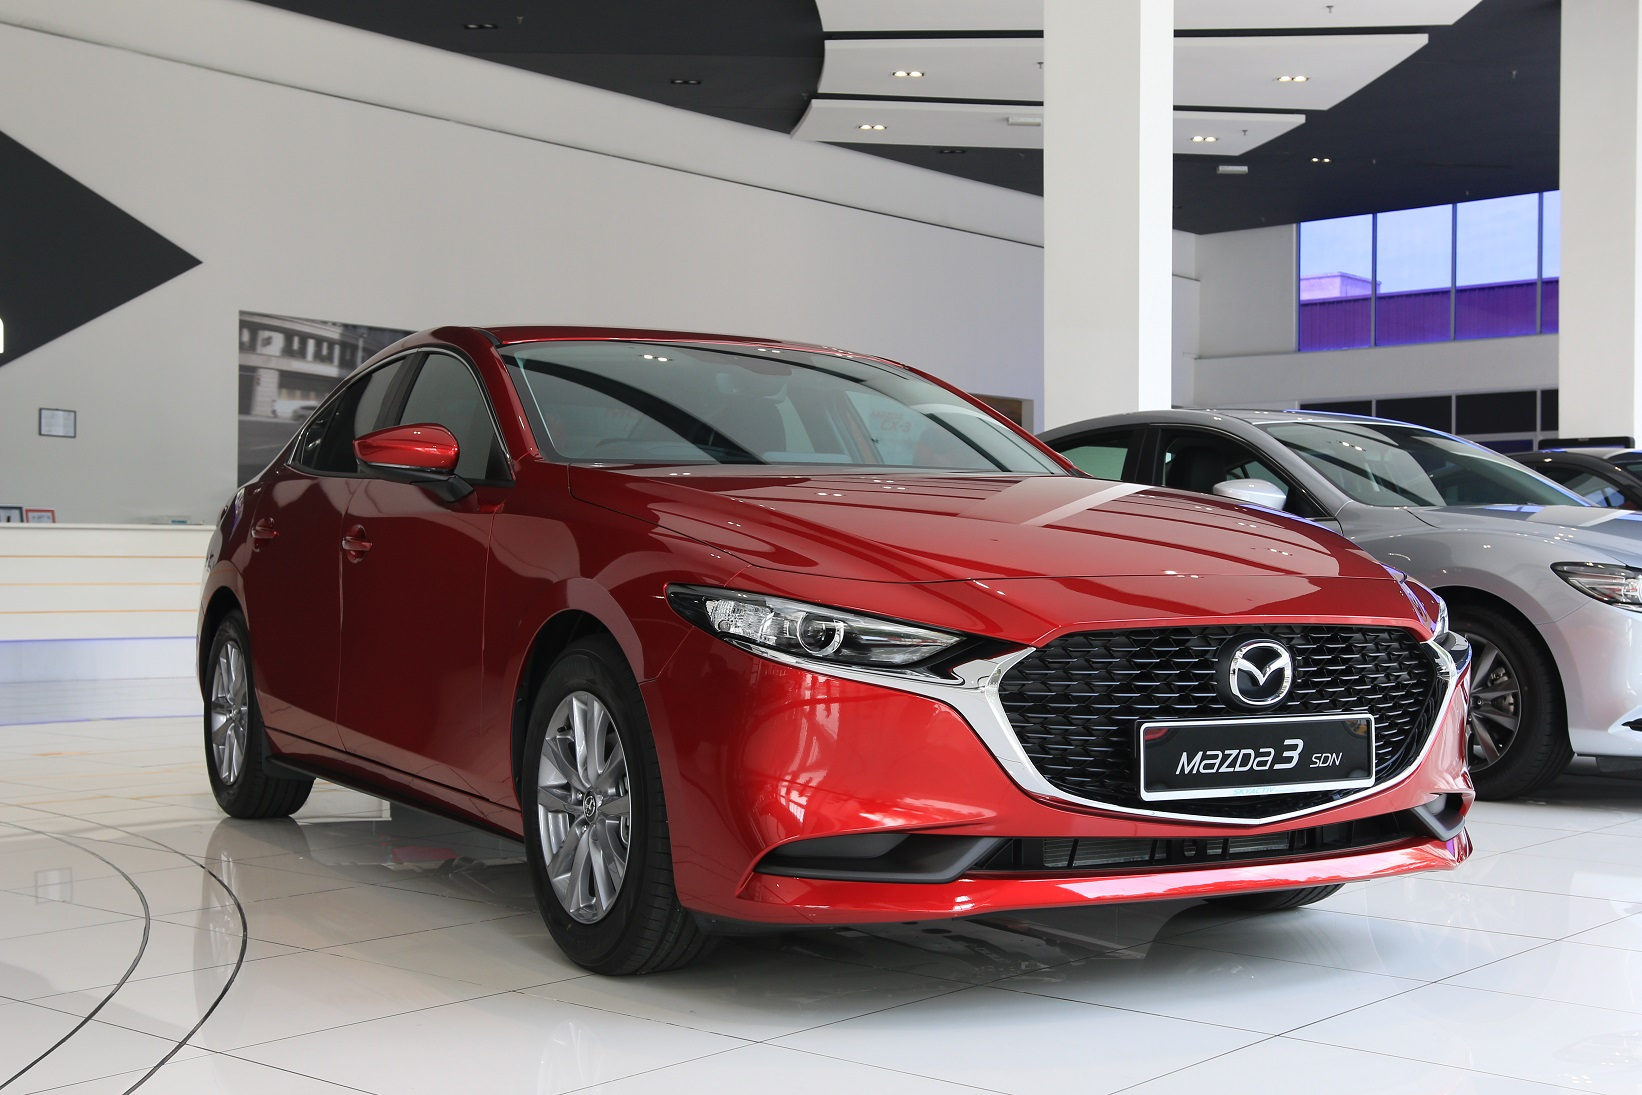 Mazda 3 Completes its Hat Trick- Third Award in a Month 4